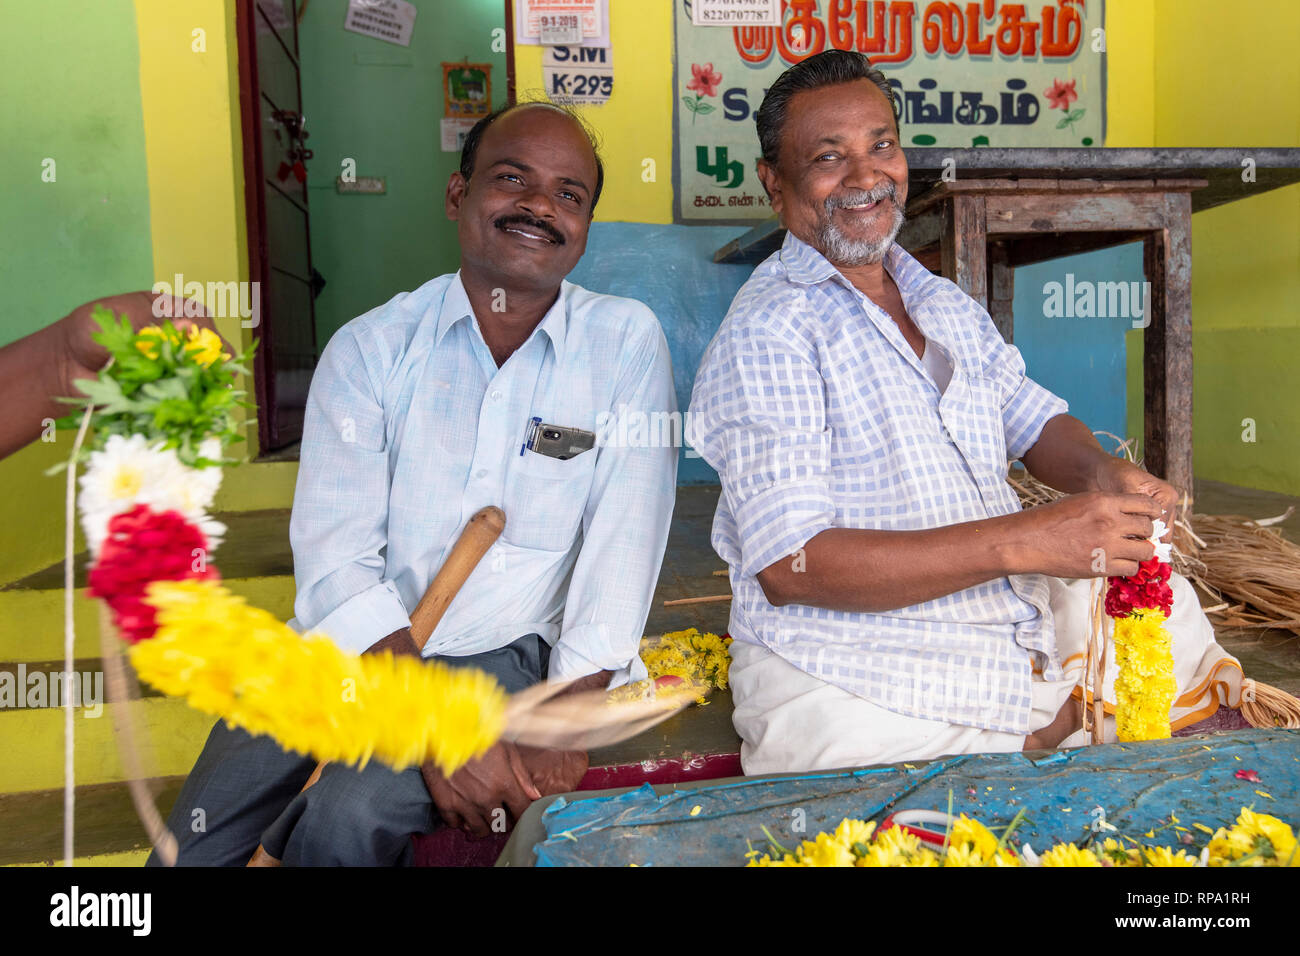 Friendly stall holders pose for the camera at the Madurai flower market while making garlands of flowers to sell. - Stock Image